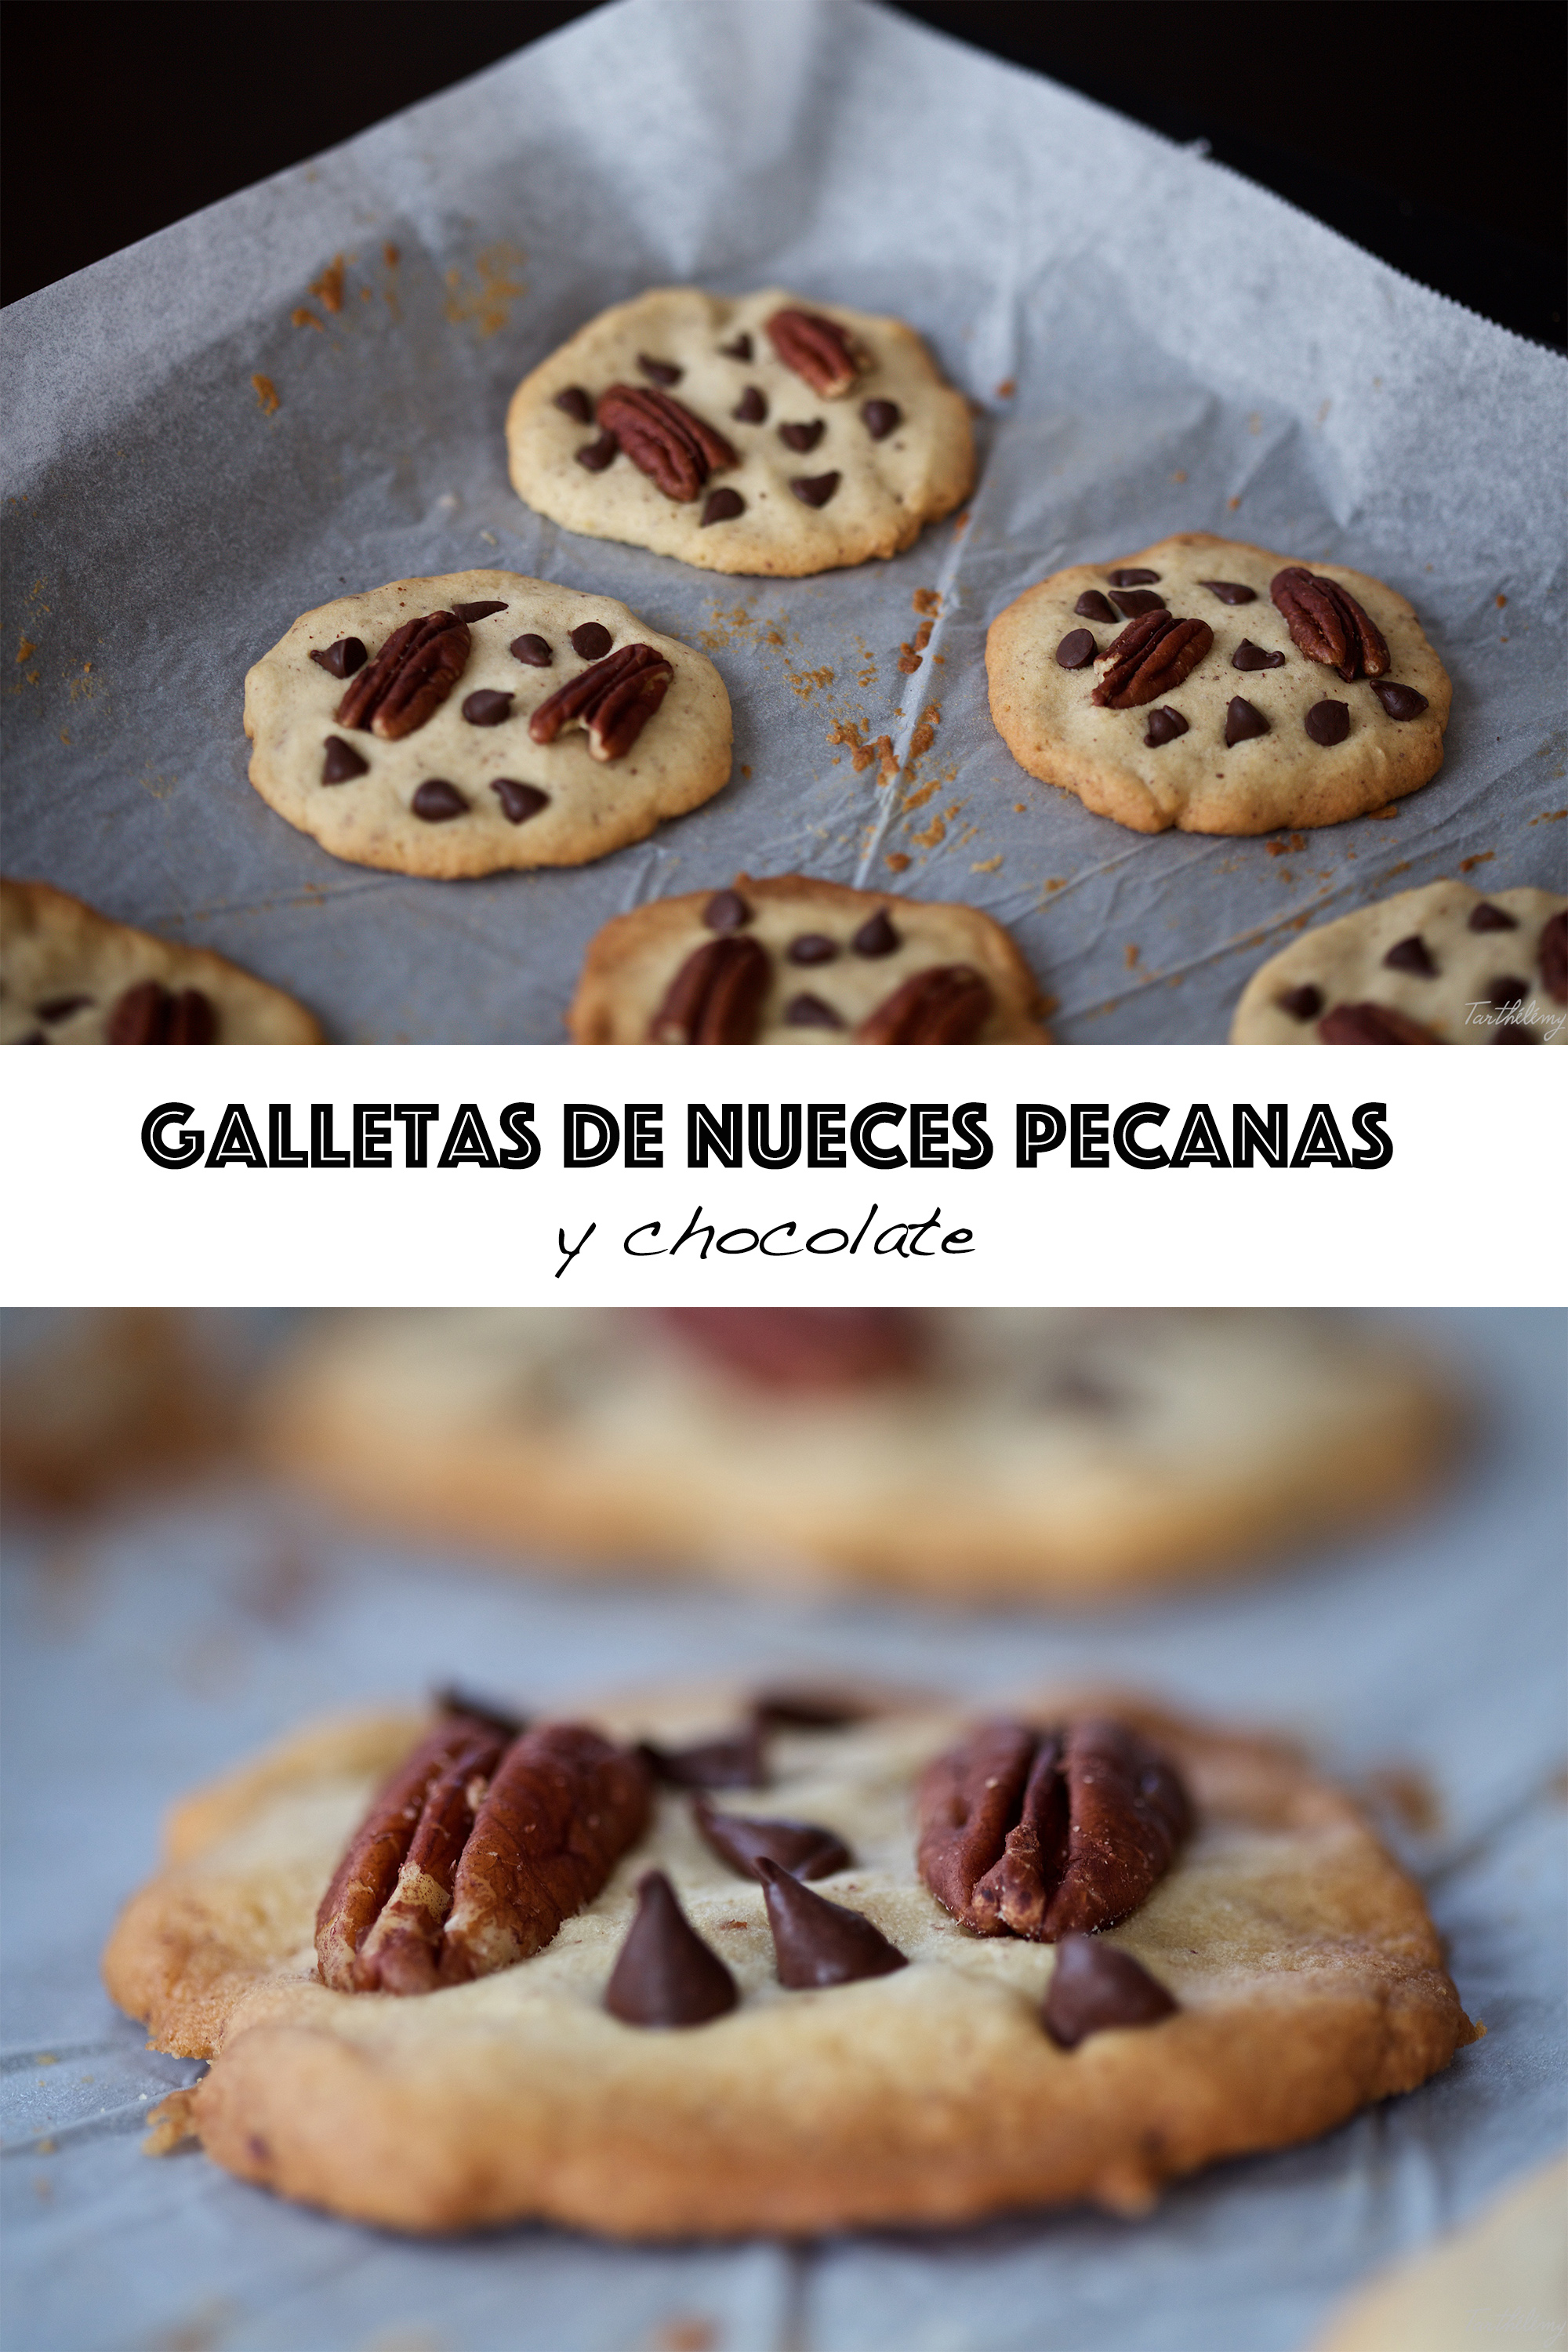 Galletas de nueces pecanas y chocolate